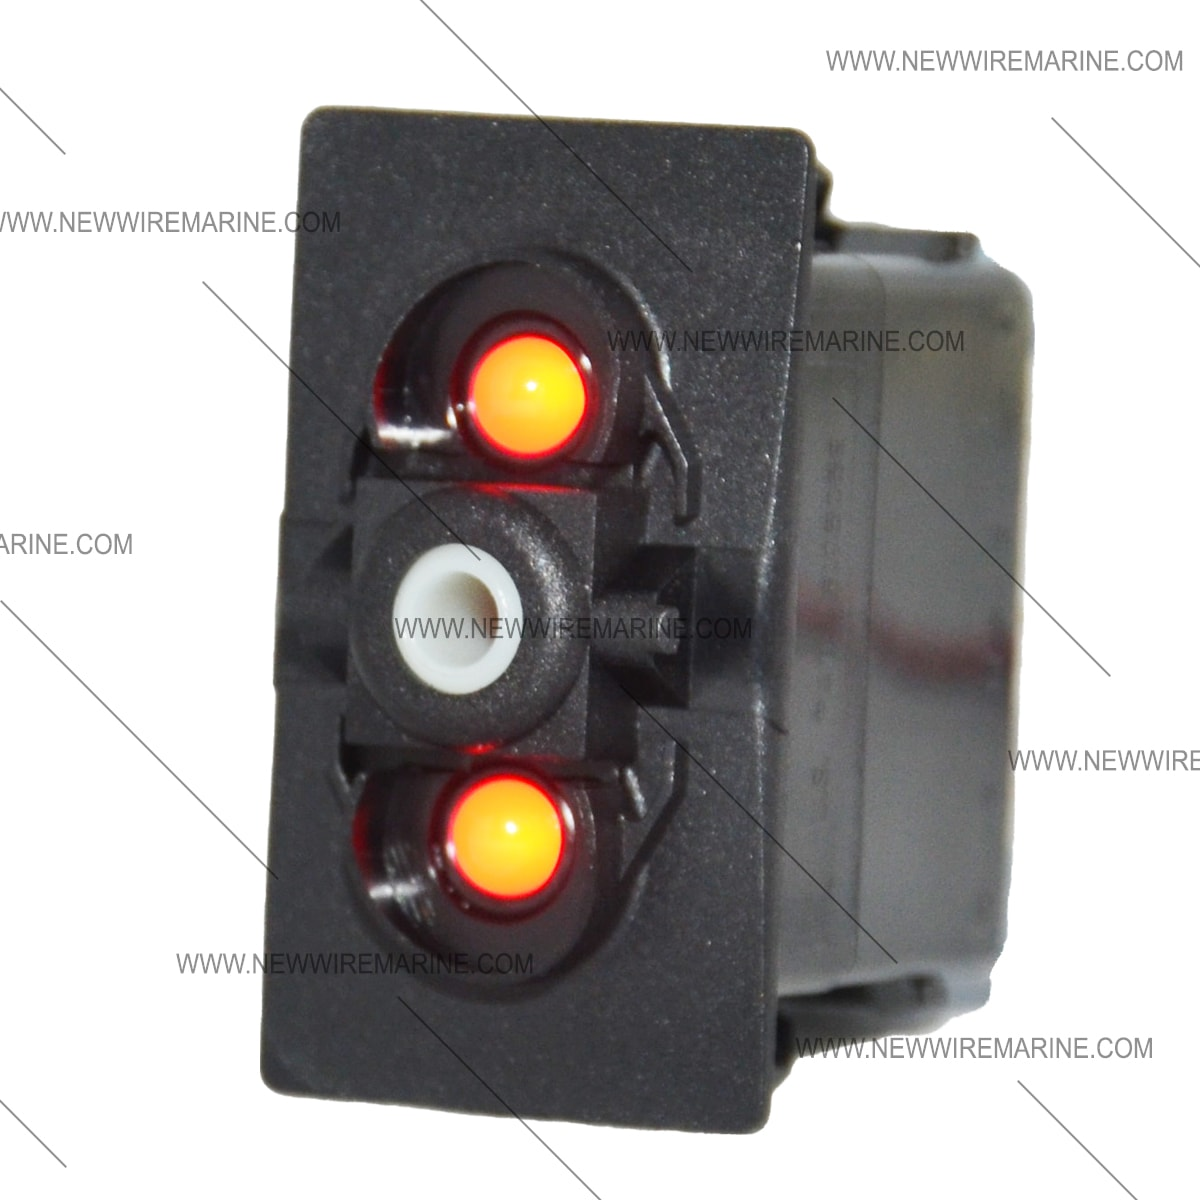 lighted rocker switch diagram 2010 f150 trailer wiring on off backlit red led new wire marine